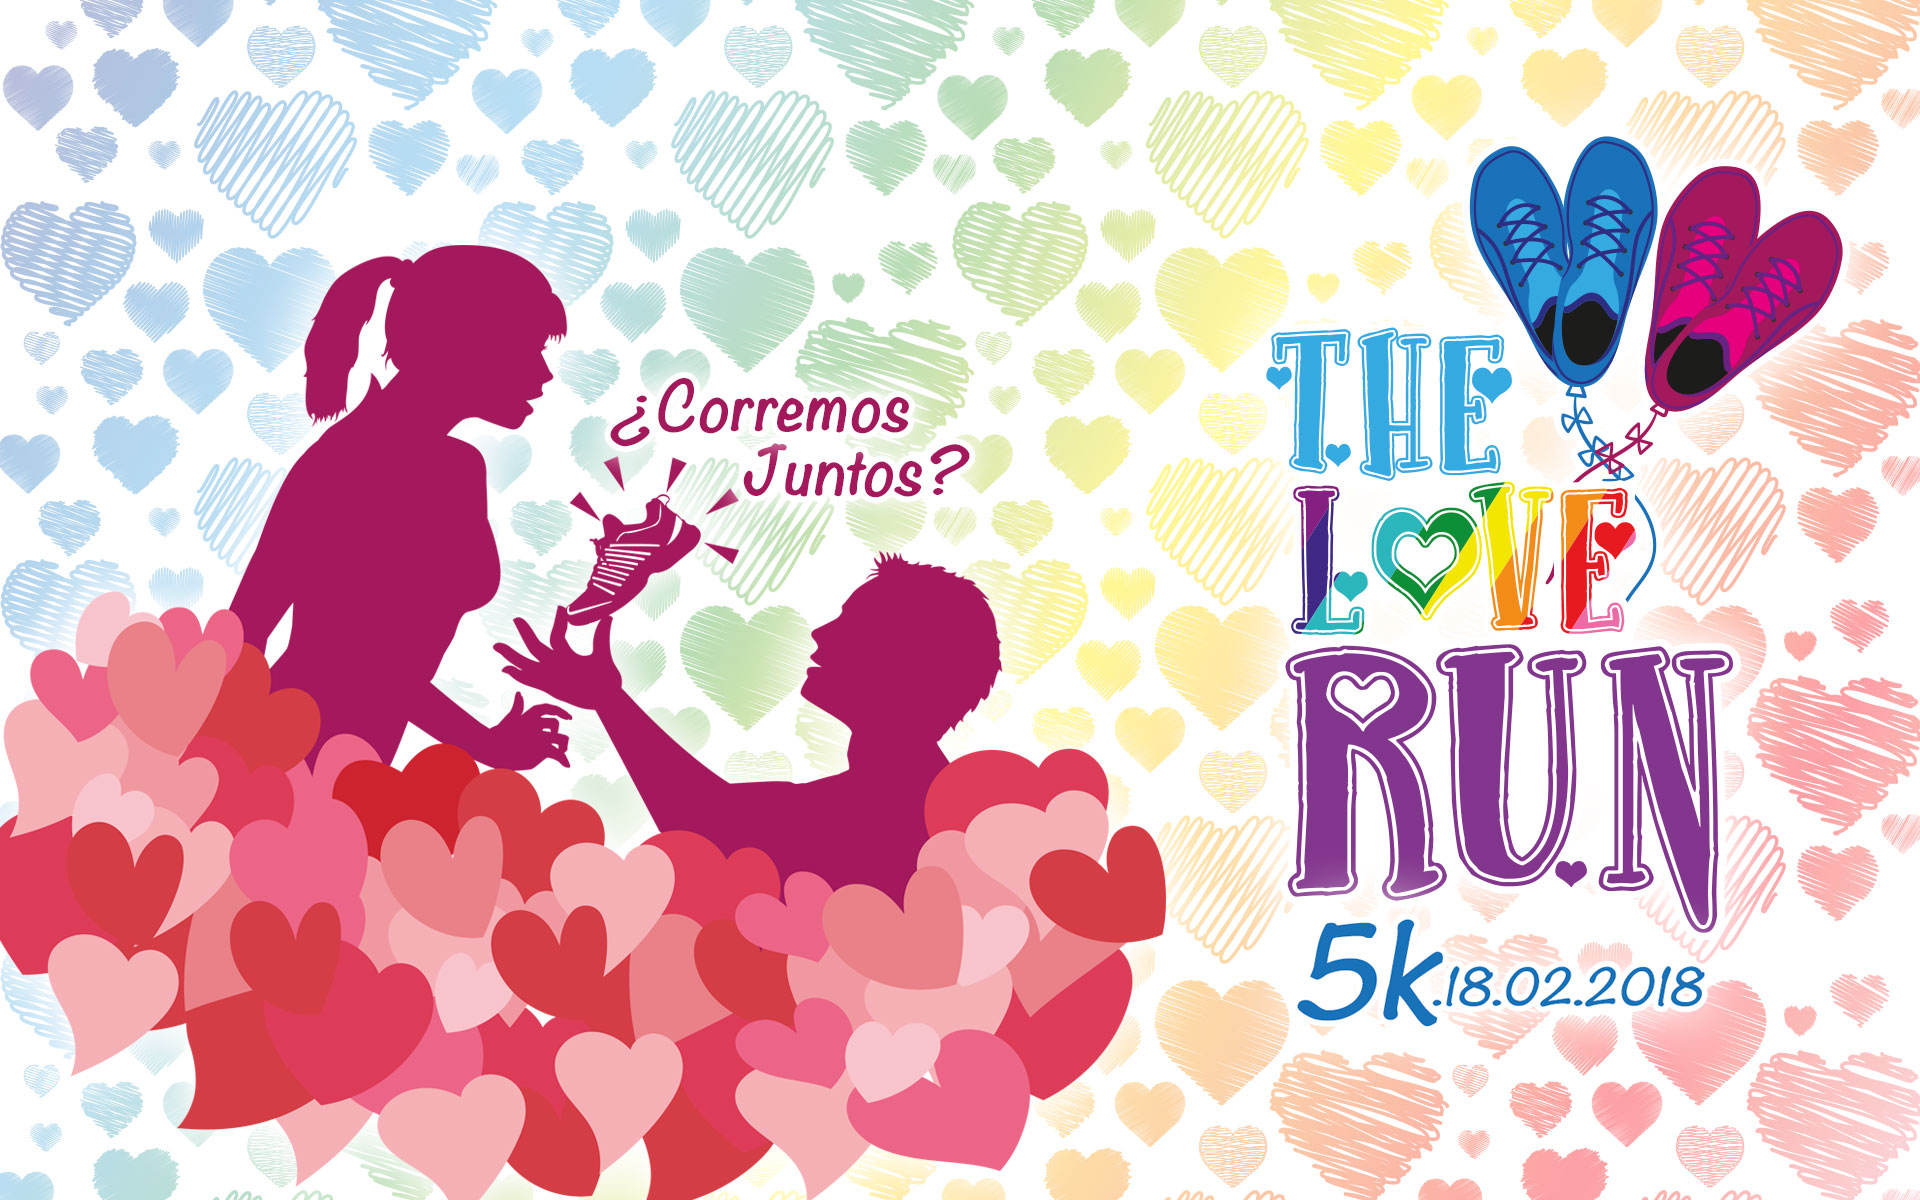 Atlética The Love Run 2018